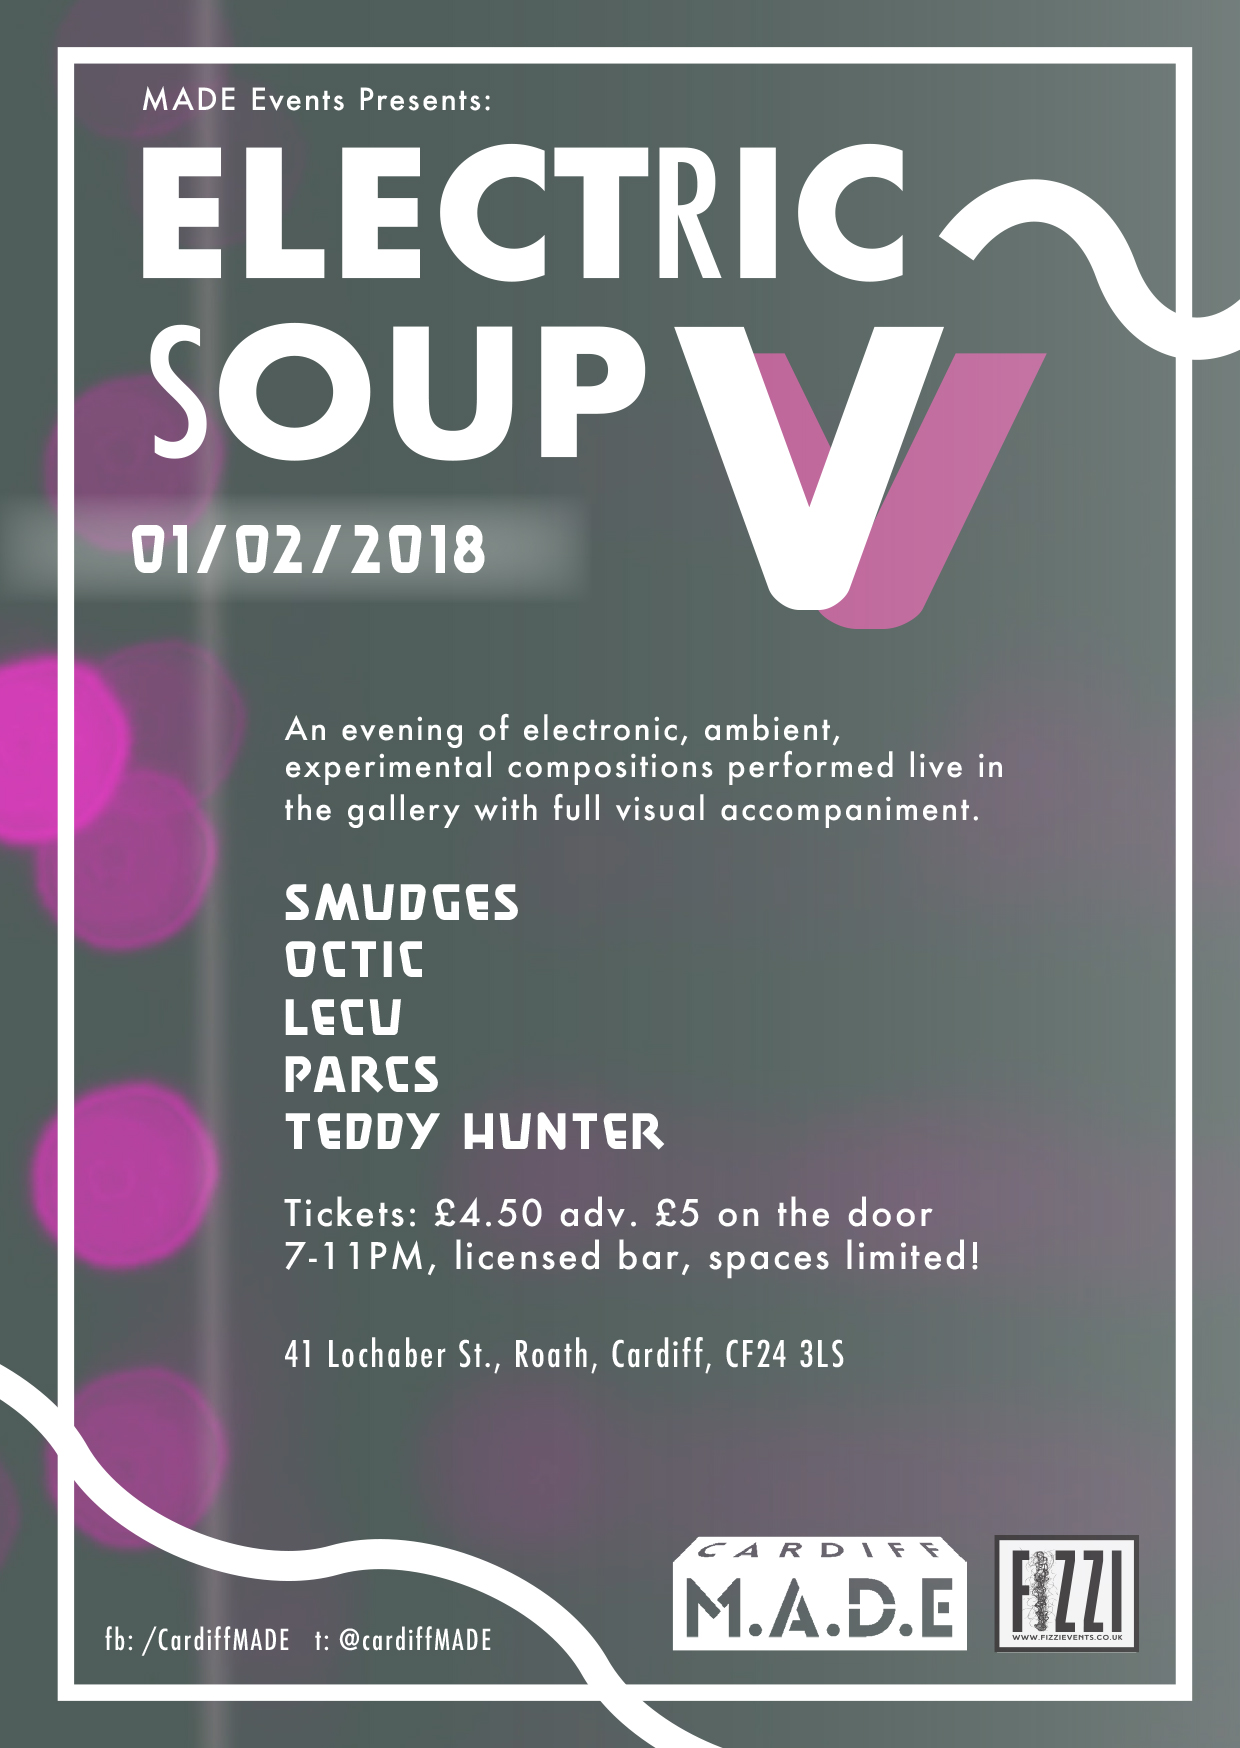 Electric Soup V – Cardiff M.A.D.E